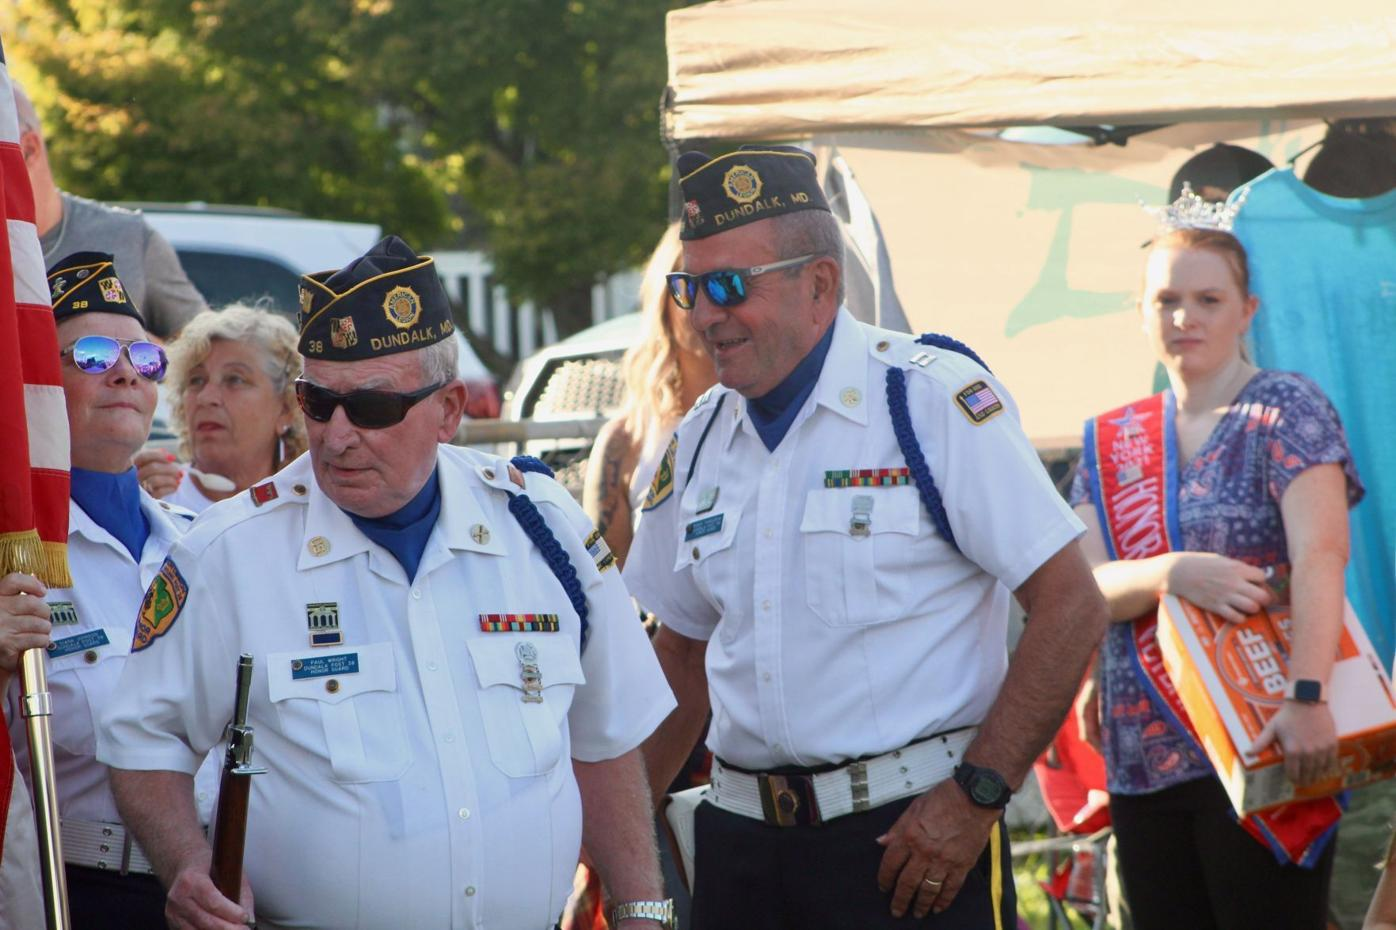 In Watersedge, remembrance and a celebration